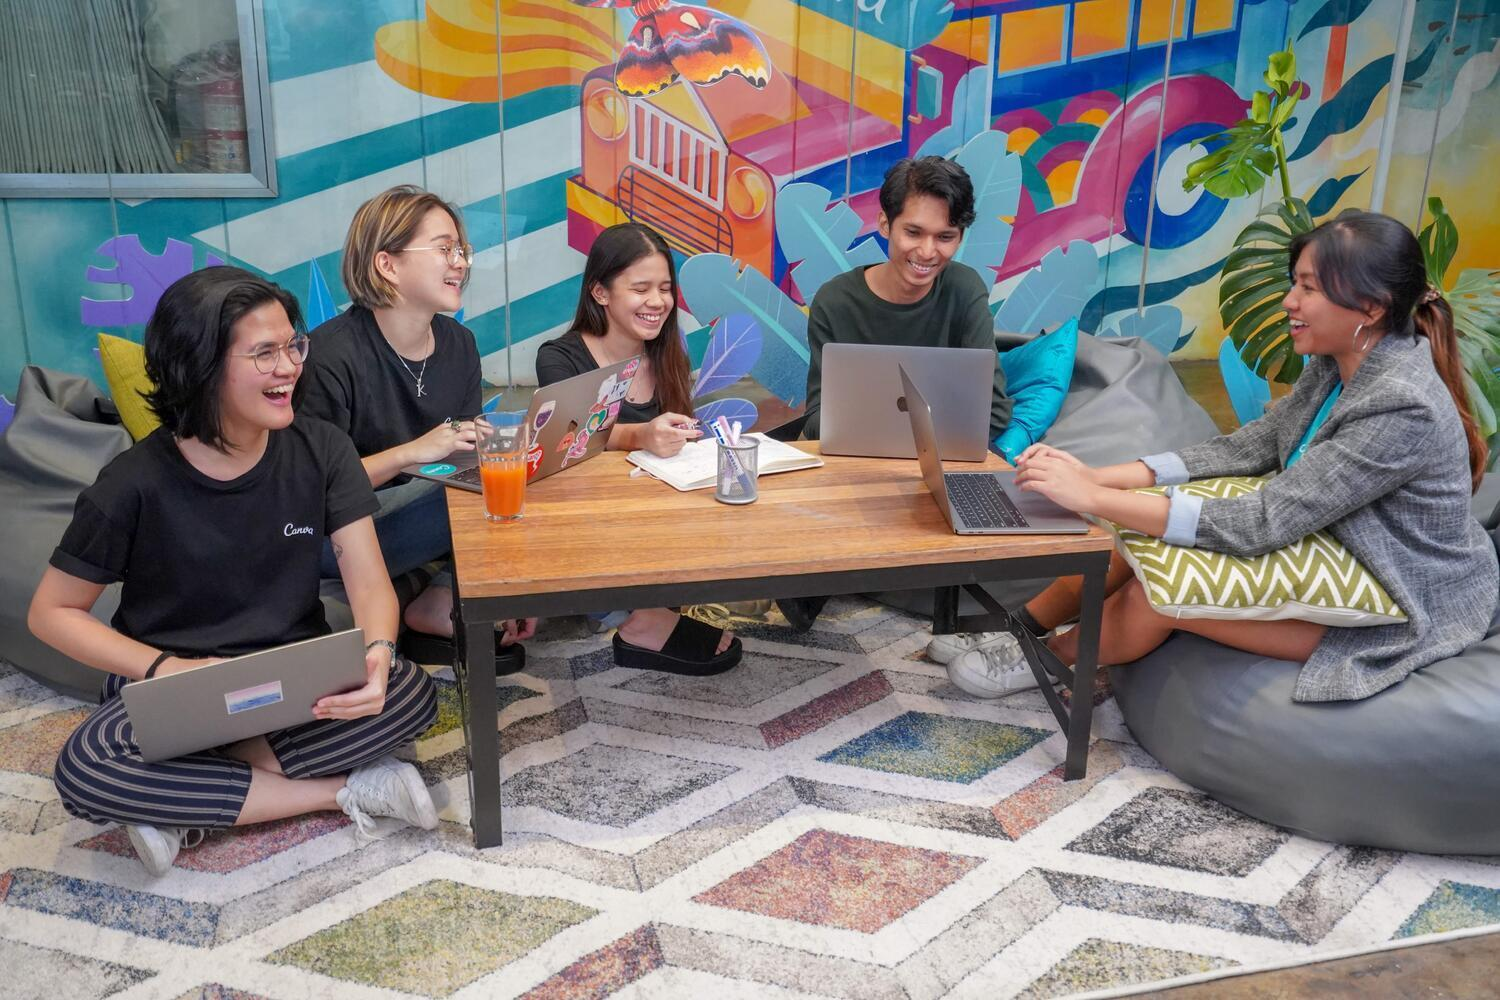 How Canva Uses Creativity and Company Vision to Keep Remote Employees Engaged